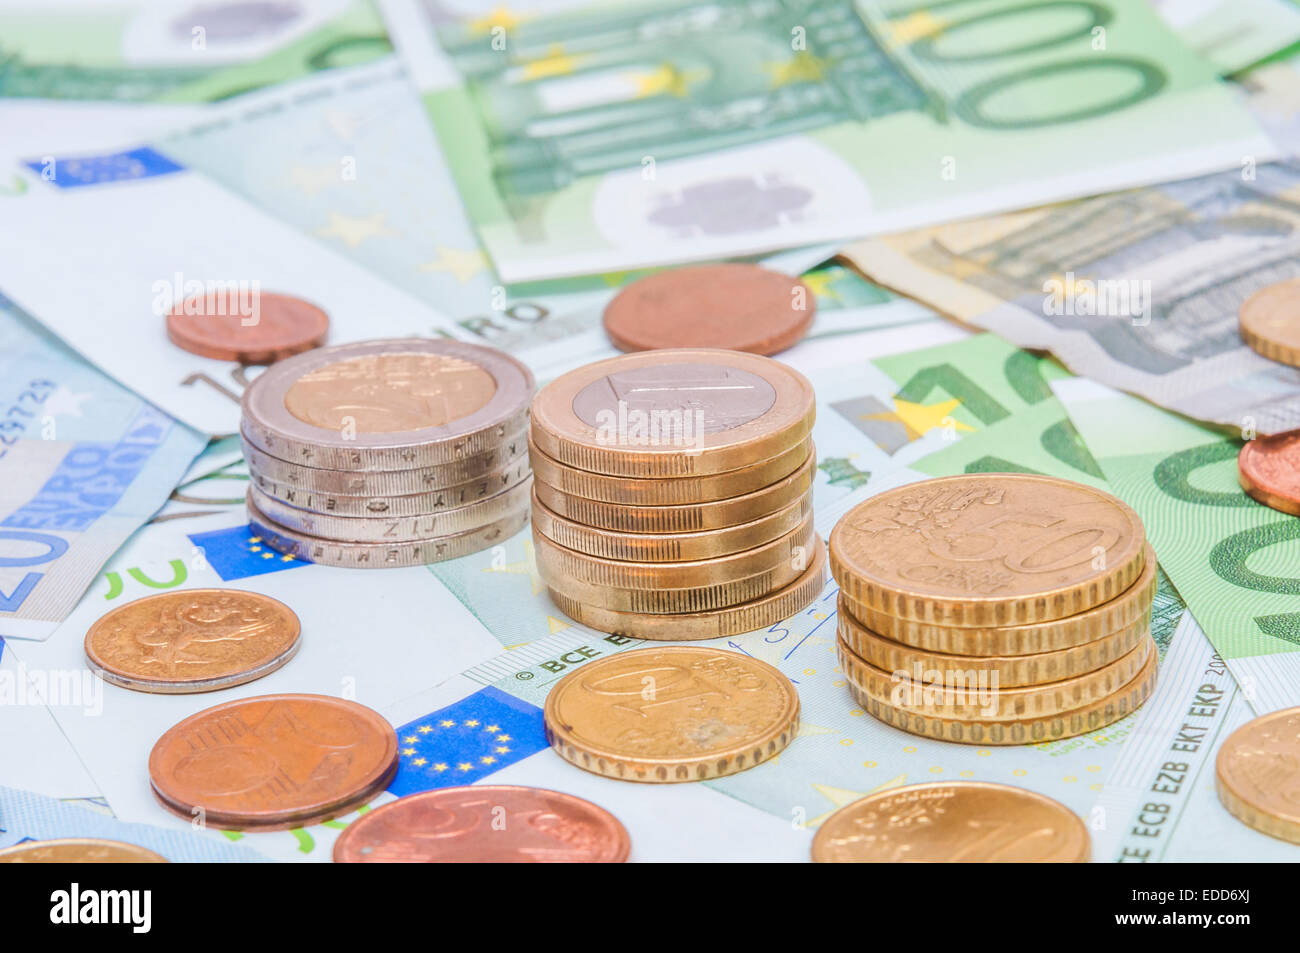 Euro banknotes and euro coins in simple example of unpredictable prognoses. - Stock Image